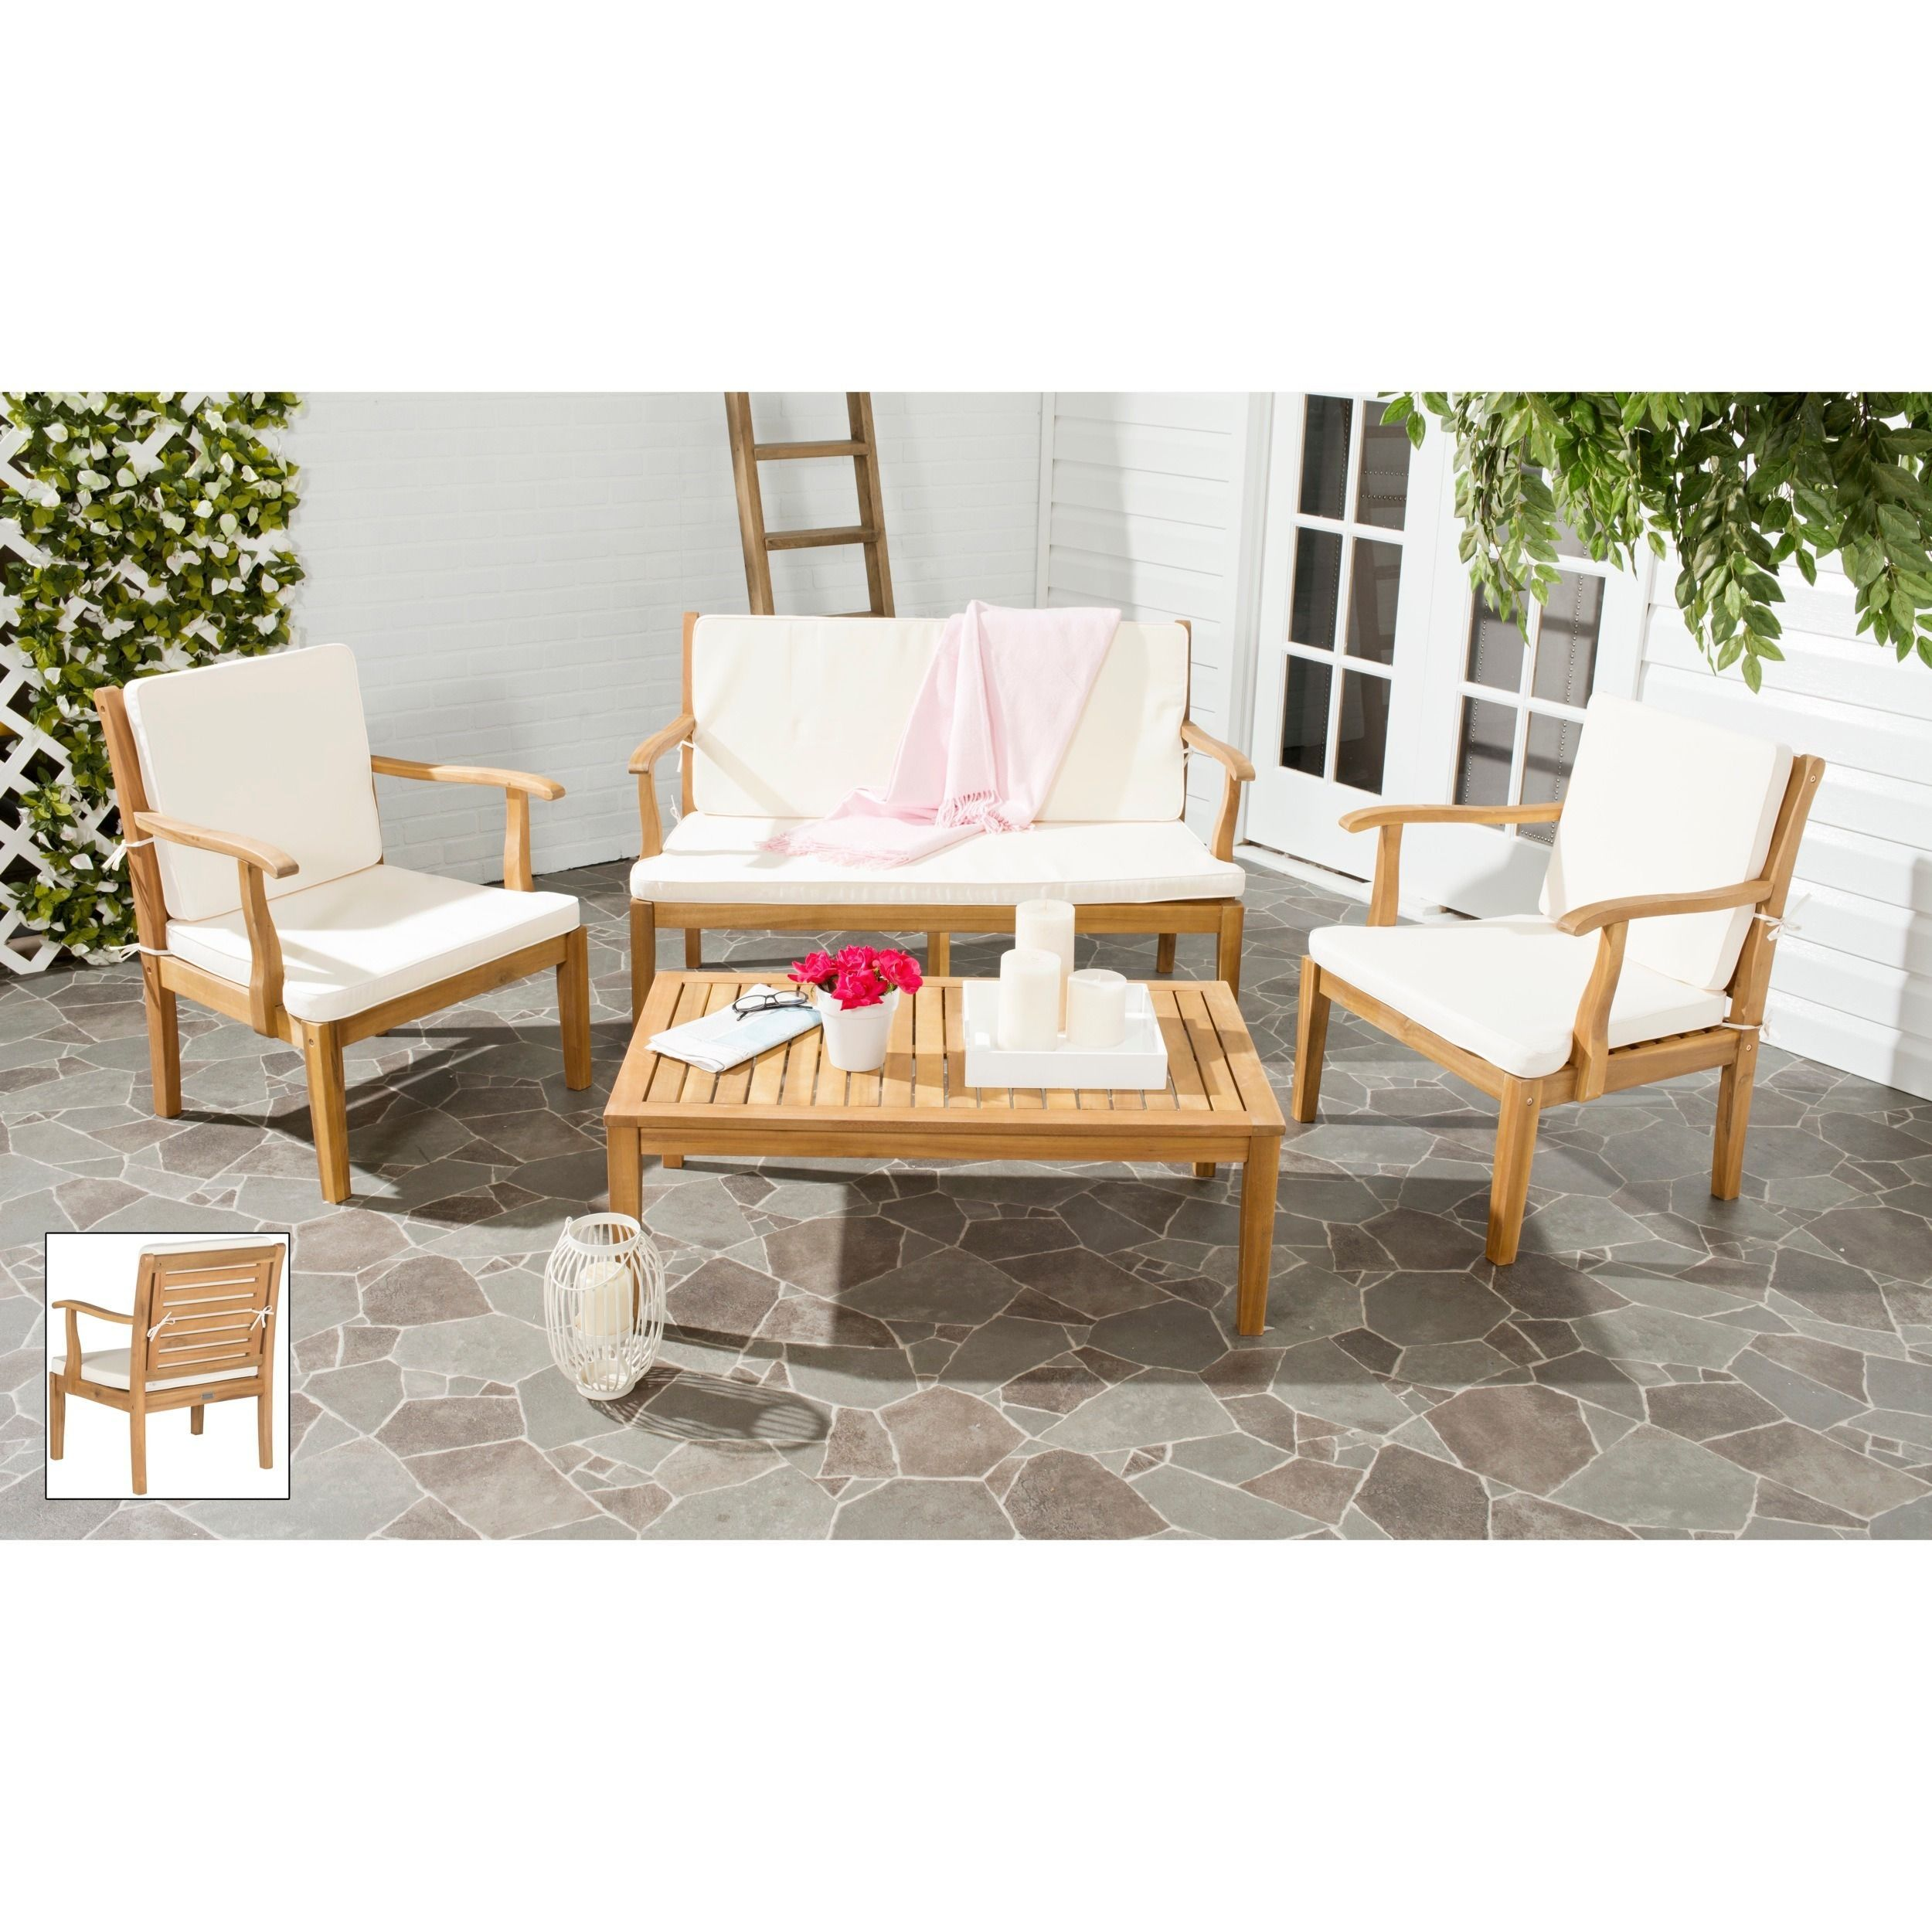 Exuding British colonial style, the Fresno 4-piece outdoor living set features back detailing and coffee table top inspired by plantation shutters.